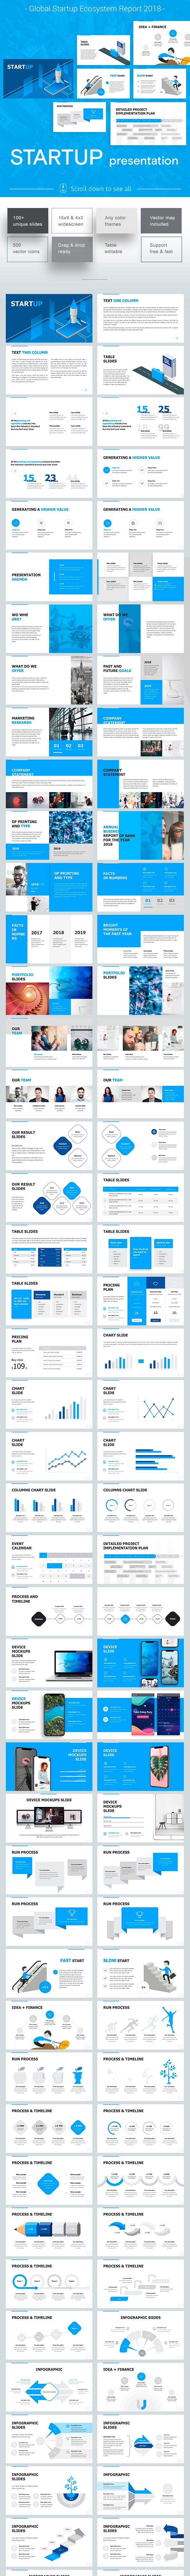 Start up Pitch Powerpoint Template - Pitch Deck PowerPoint Templates